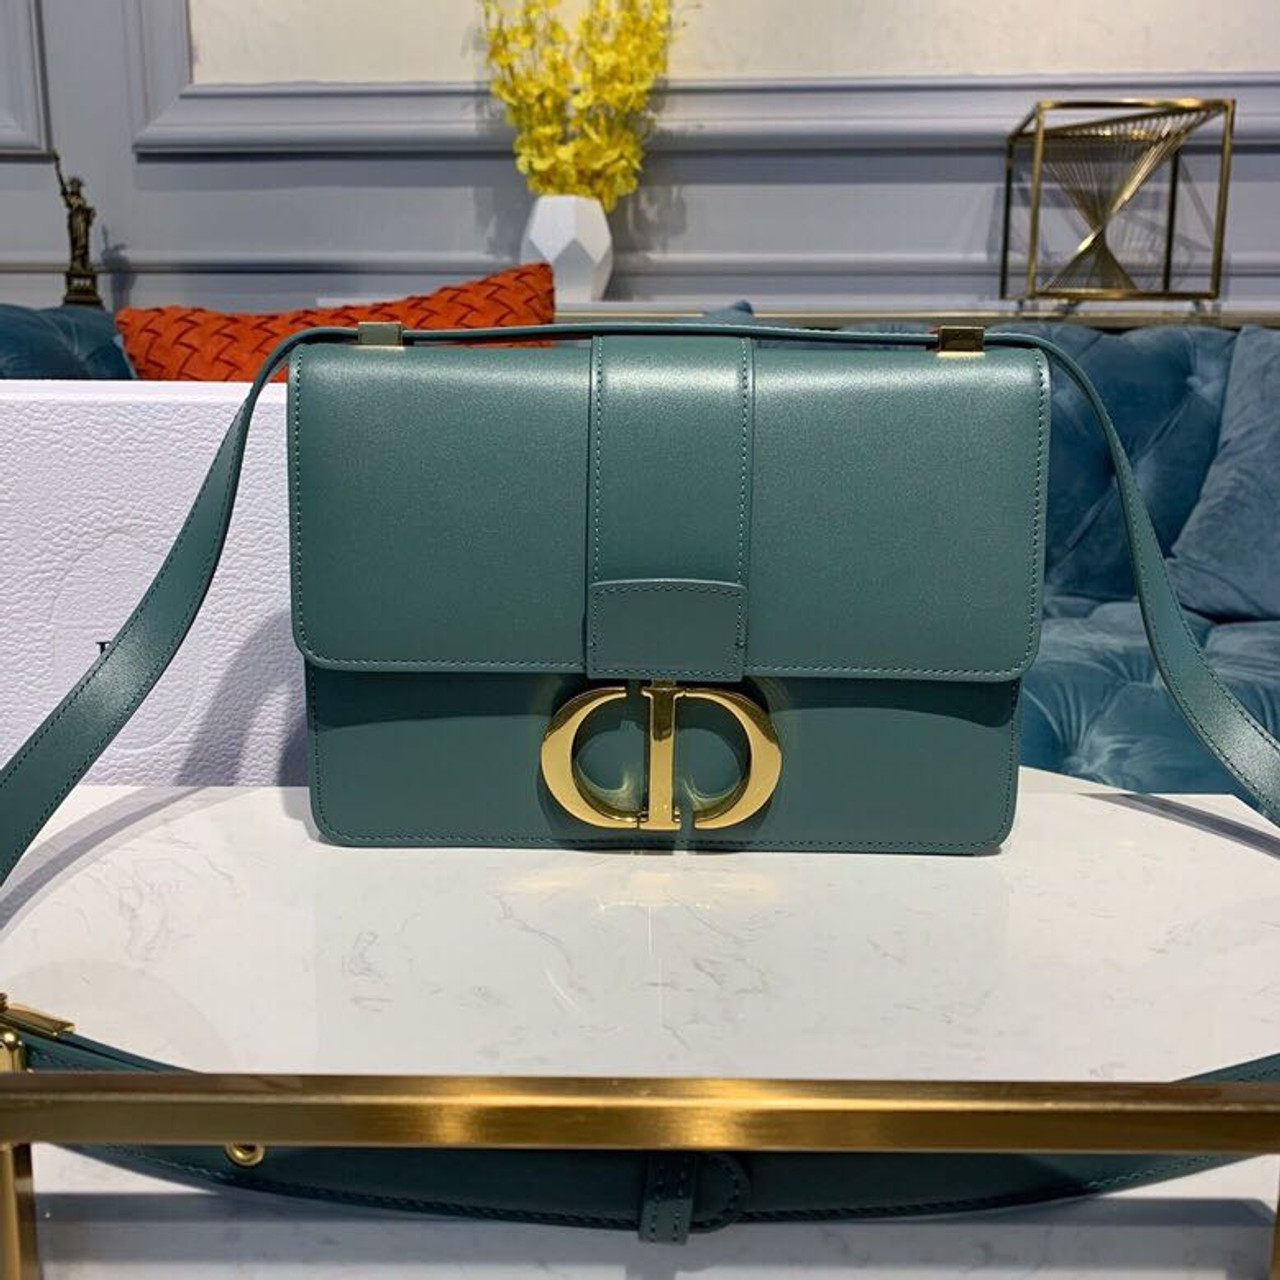 b556b874c3 Christian Dior 30 Montaigne Bag 24cm Gold Hardware Lambskin Leather  Spring/Summer 2019 Collection, Green